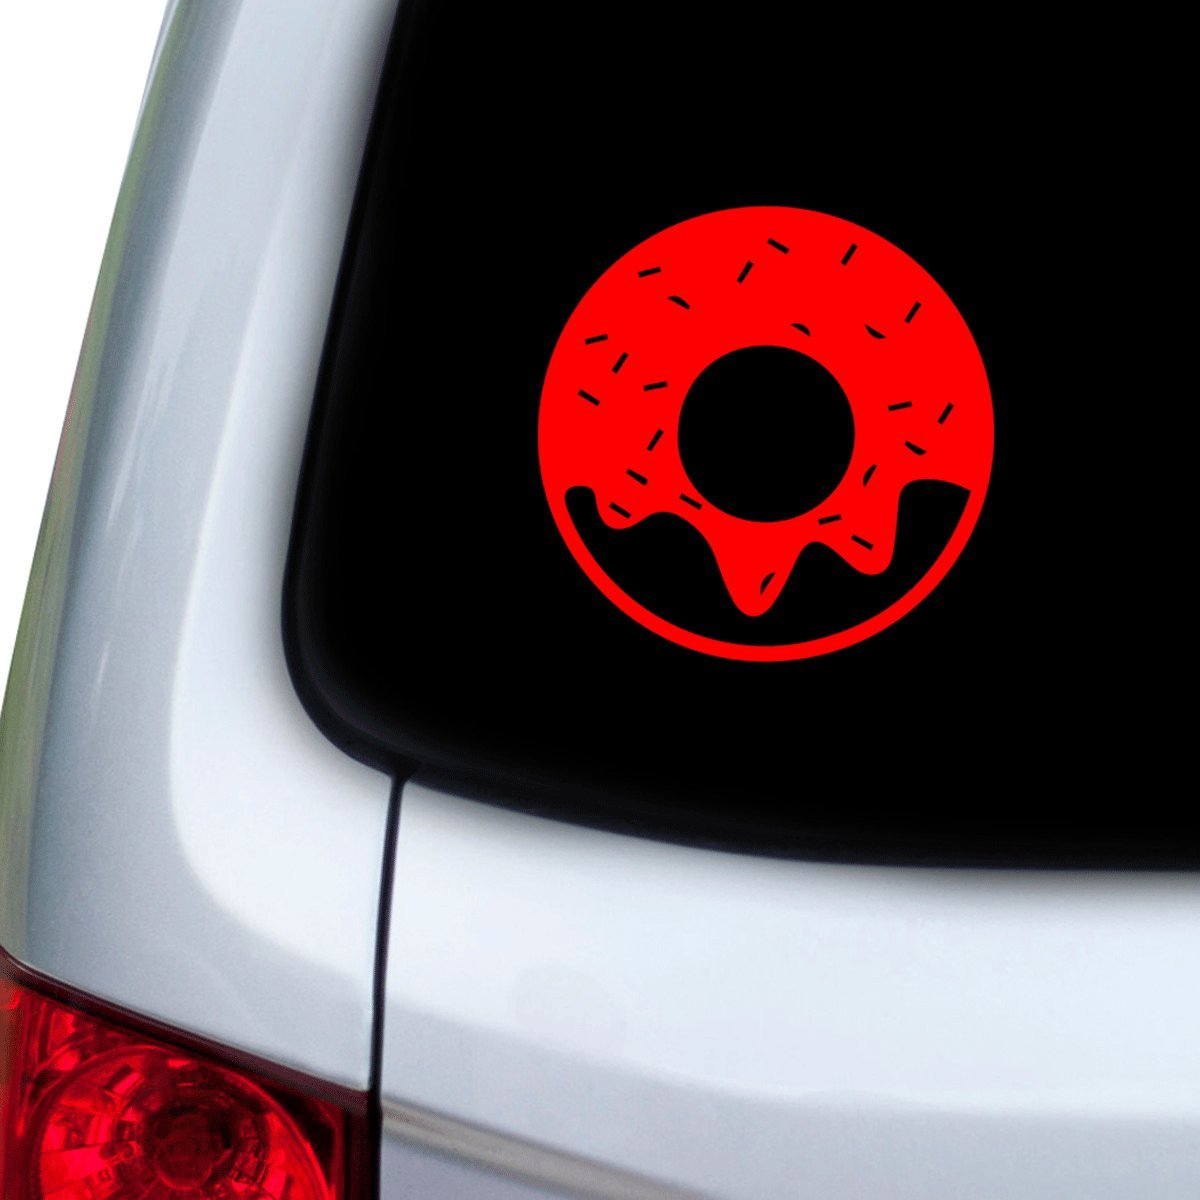 Doors Hoods StickAny Car and Auto Decal Series Doughnut Sticker for Windows Red